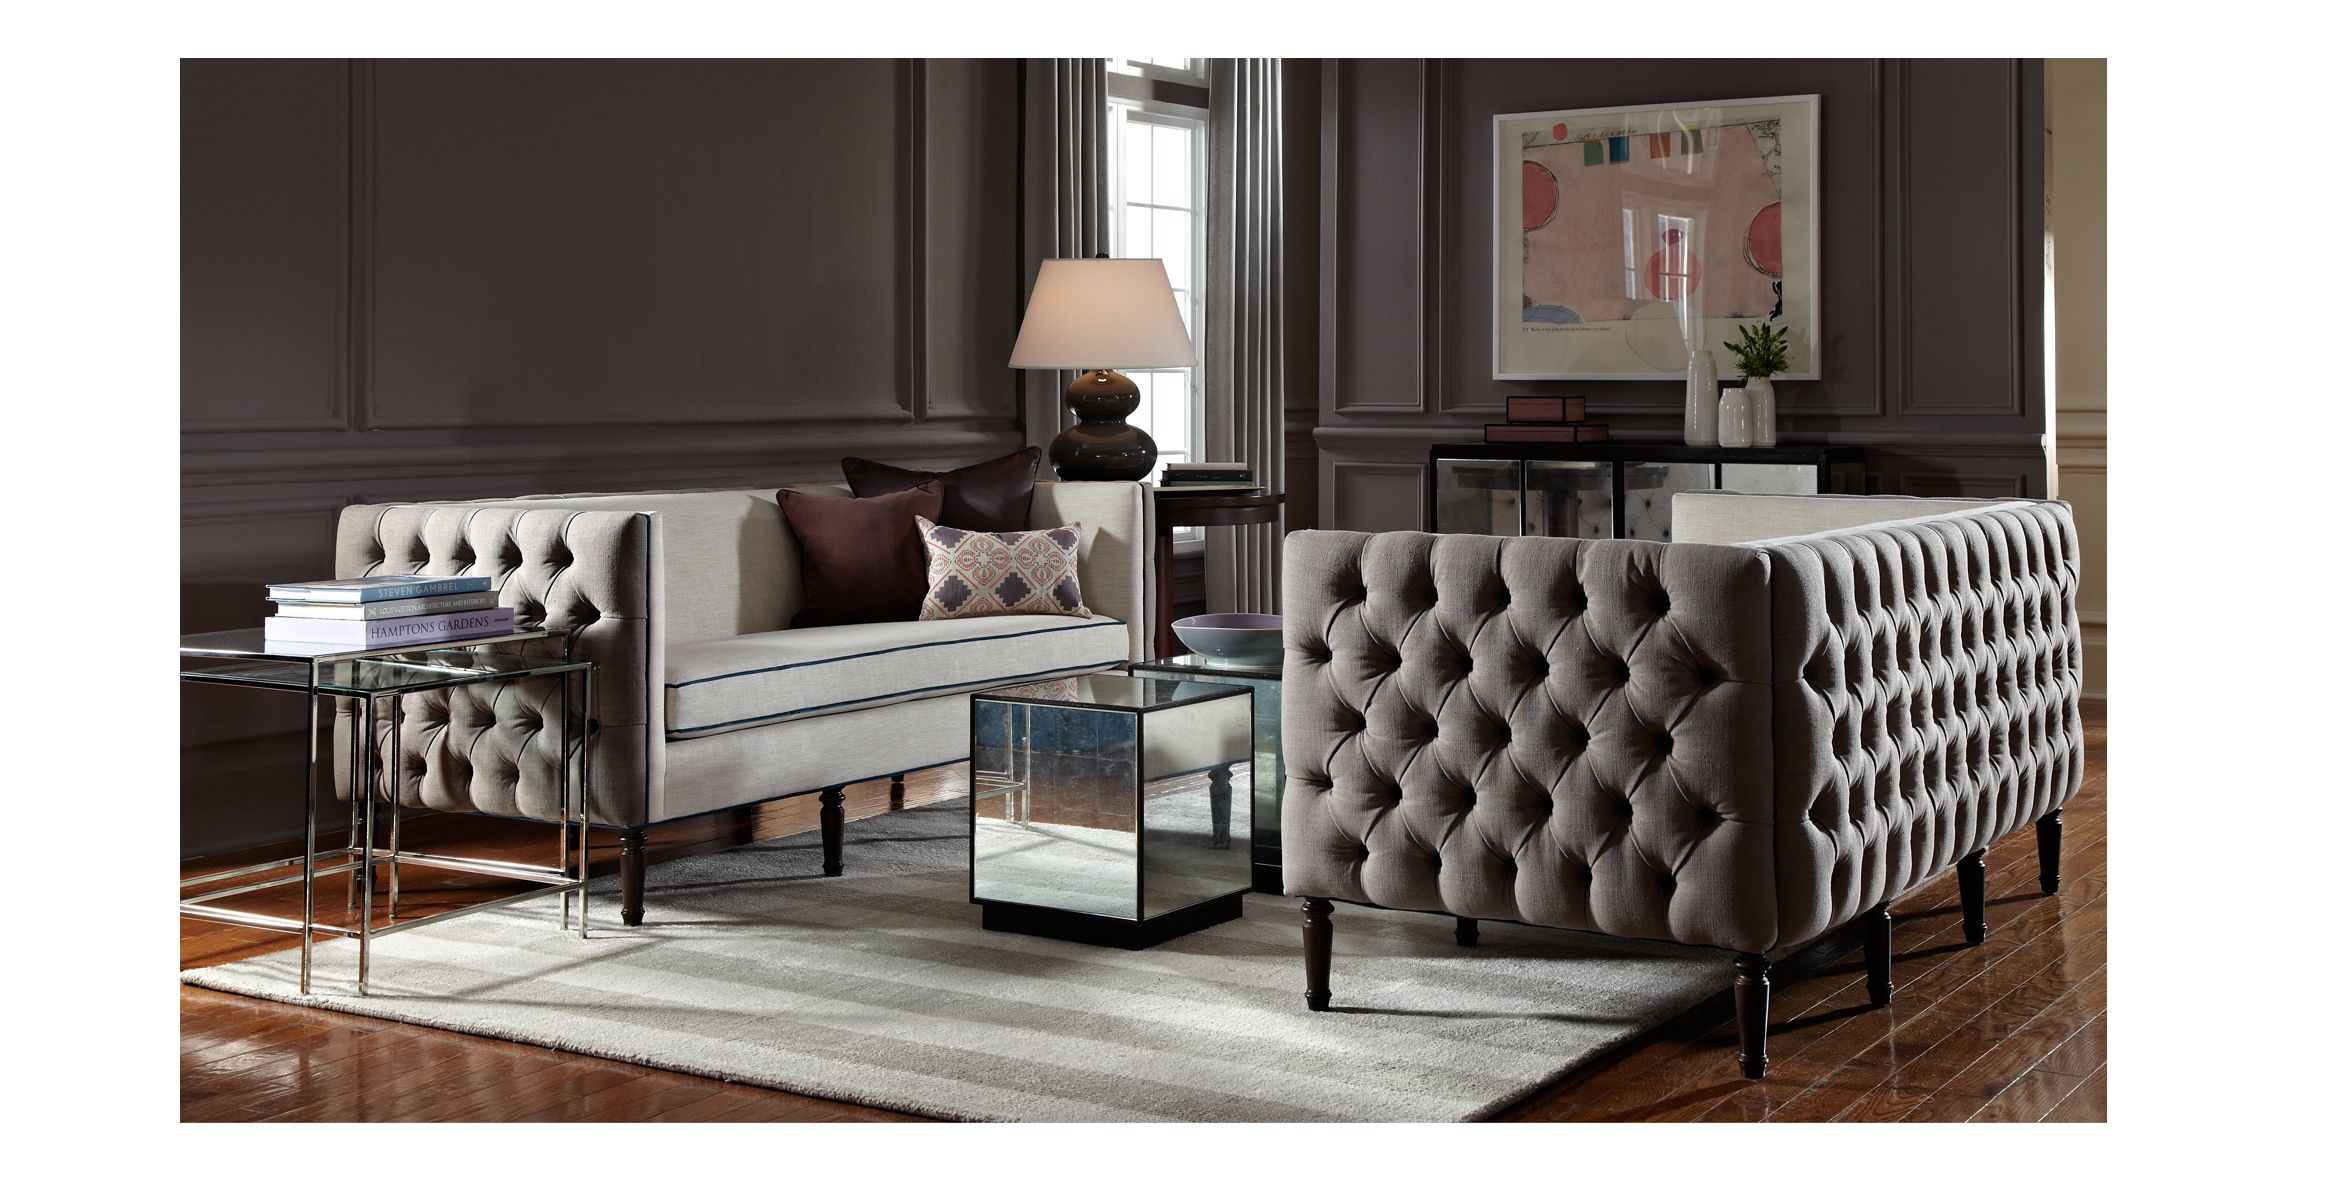 Modern Tufted Sofa - Google Search | Turn Of The Century Moderne with regard to Parsons Travertine Top & Dark Steel Base 48X16 Console Tables (Image 16 of 30)